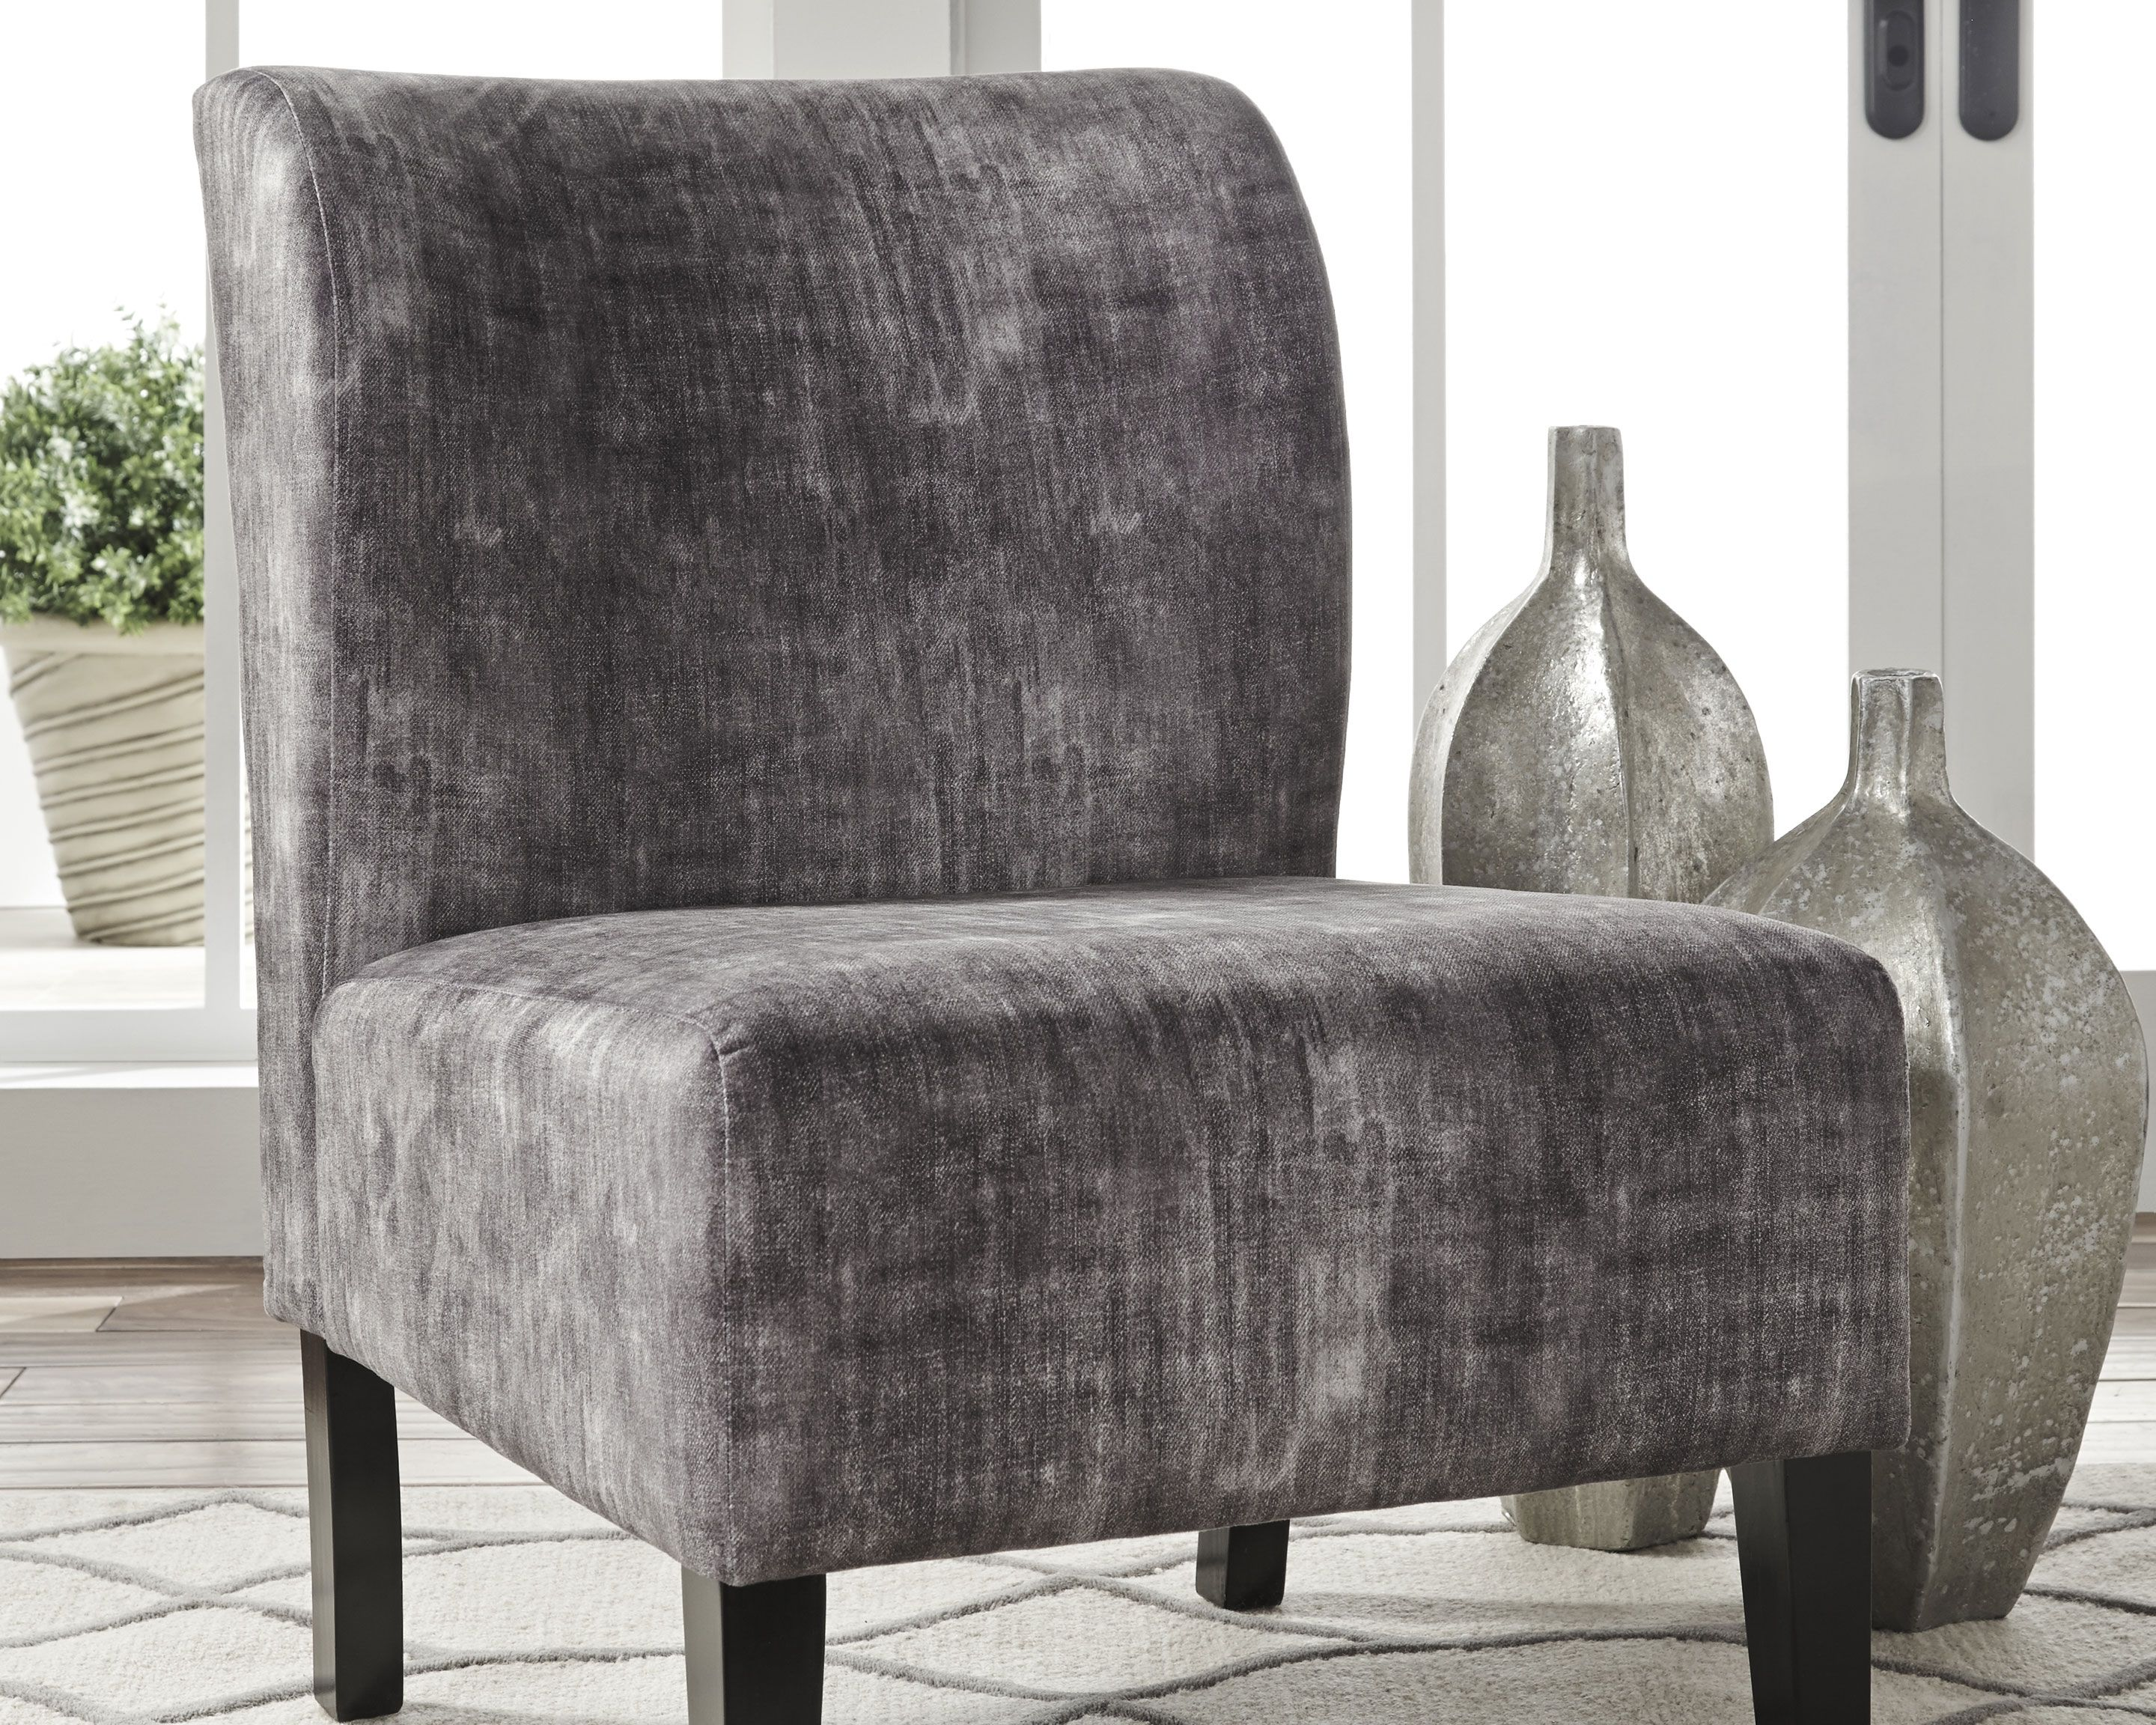 Triptis Accent Chair Charcoal Accent Chairs Living Room Chairs Furniture